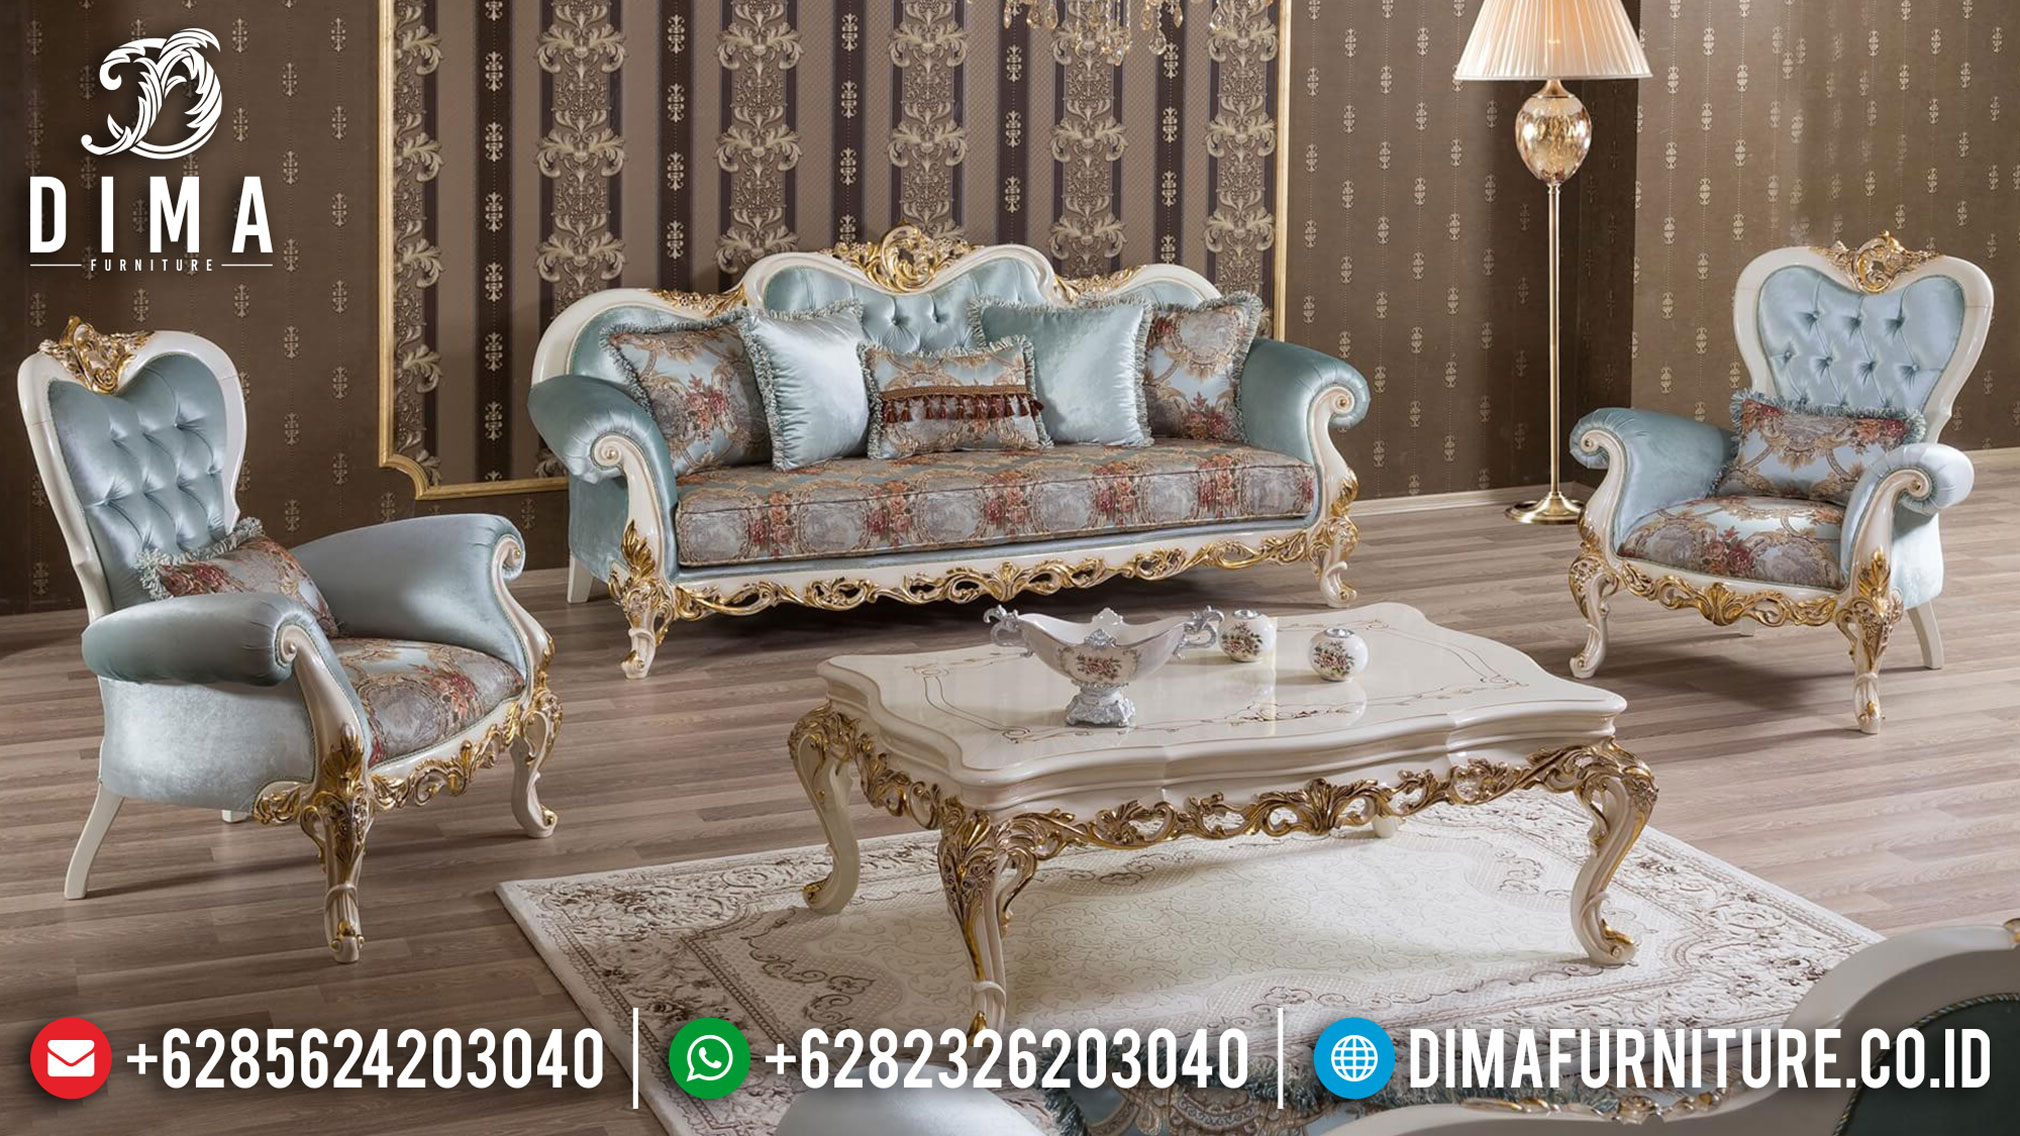 Best Sale Sofa Tamu Jepara Design Turkish Koltuk Living Room Luxury MMJ-0943